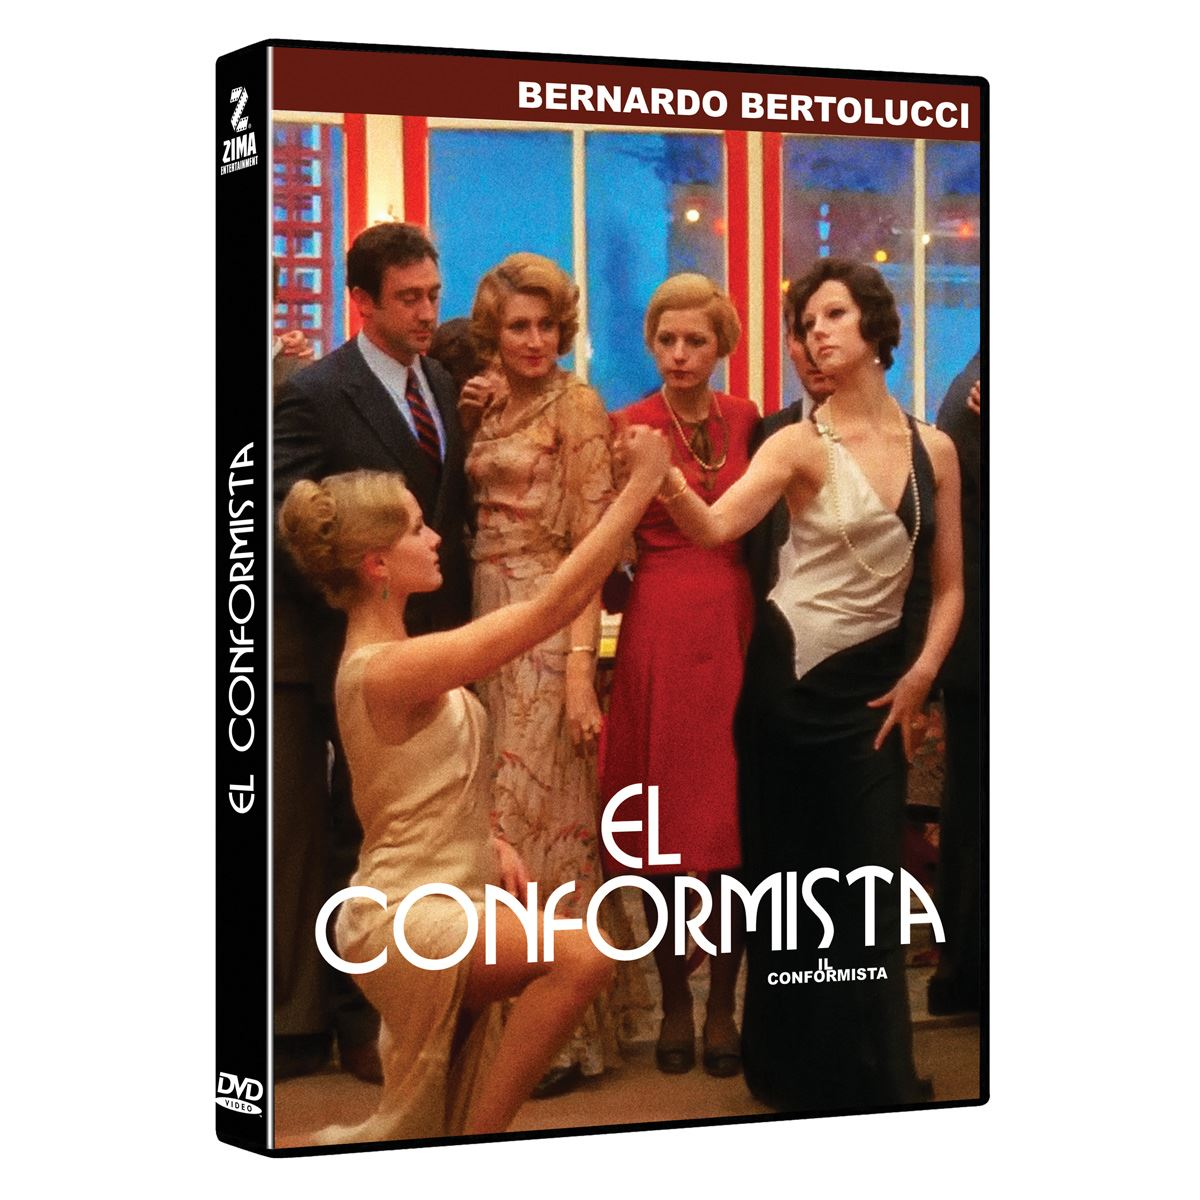 Dvd el conformista  - Sanborns